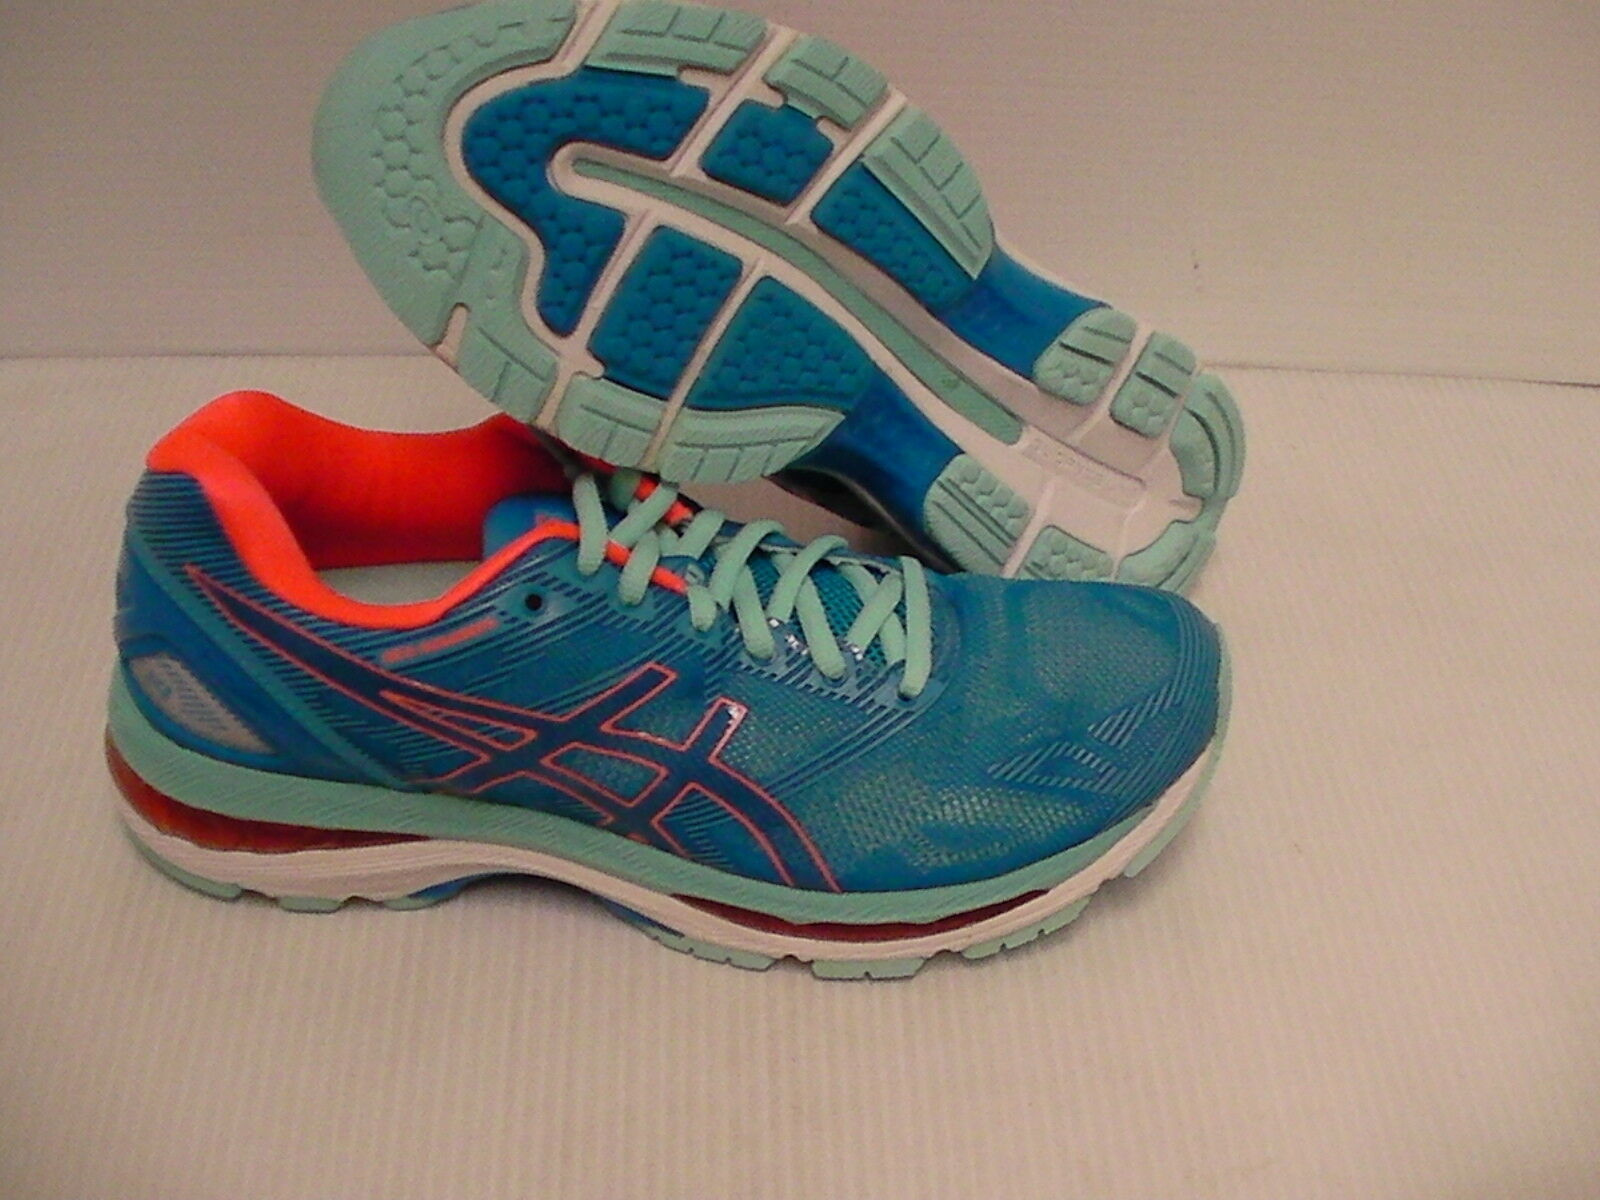 Asics women's gel nimbus 19 running shoes diva blue flash coral size 8.5 us Special limited time